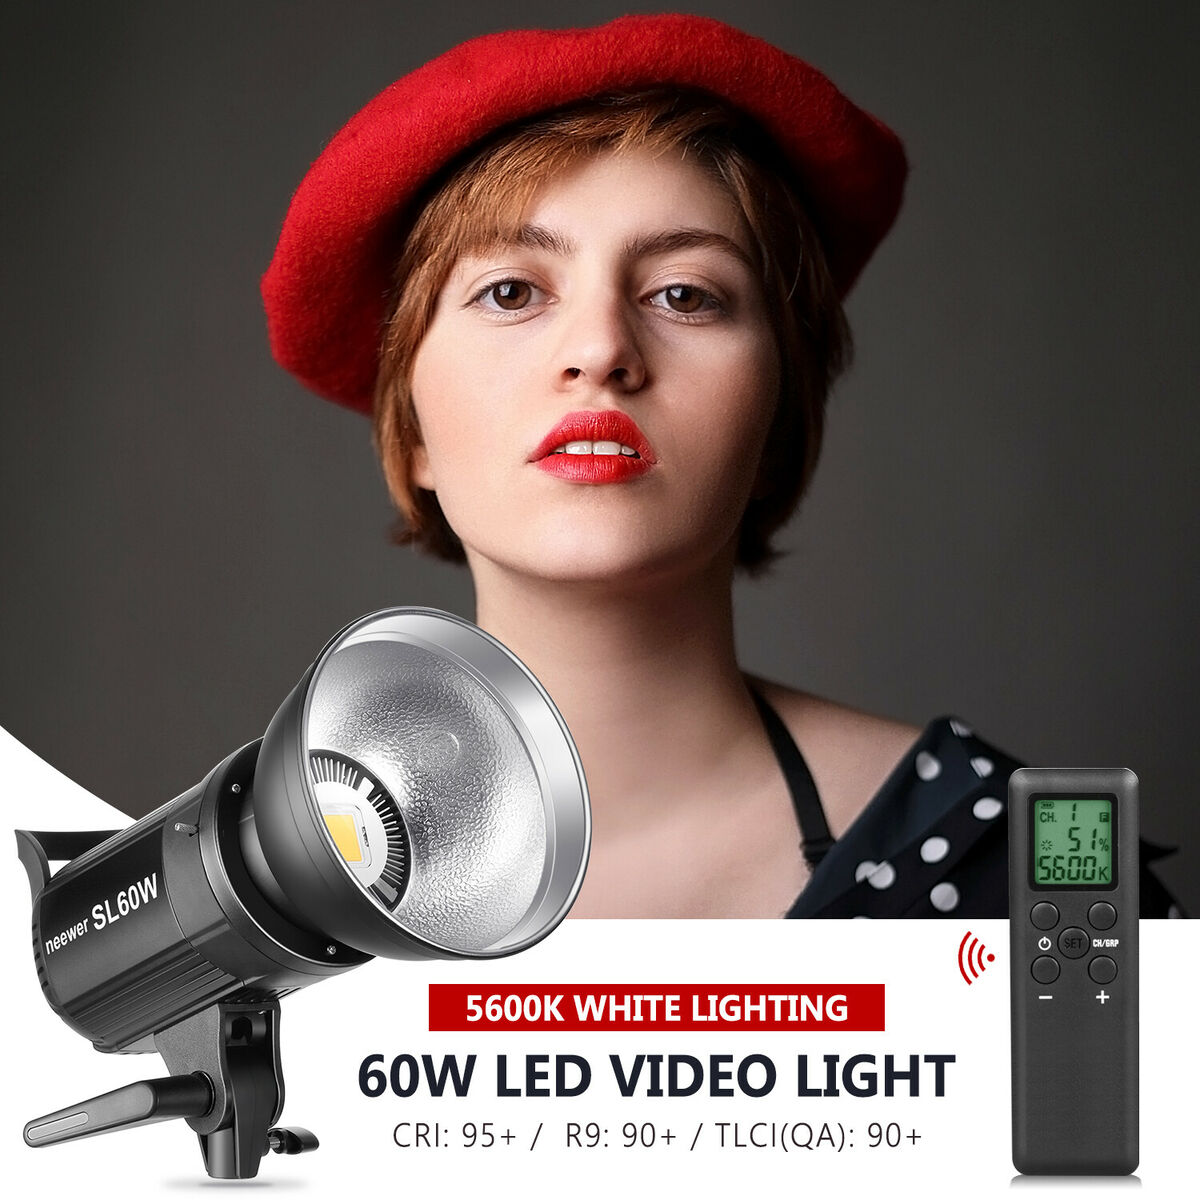 Sl 60w led video light bianco 5600k cri 95 con telecomando e riflettore 